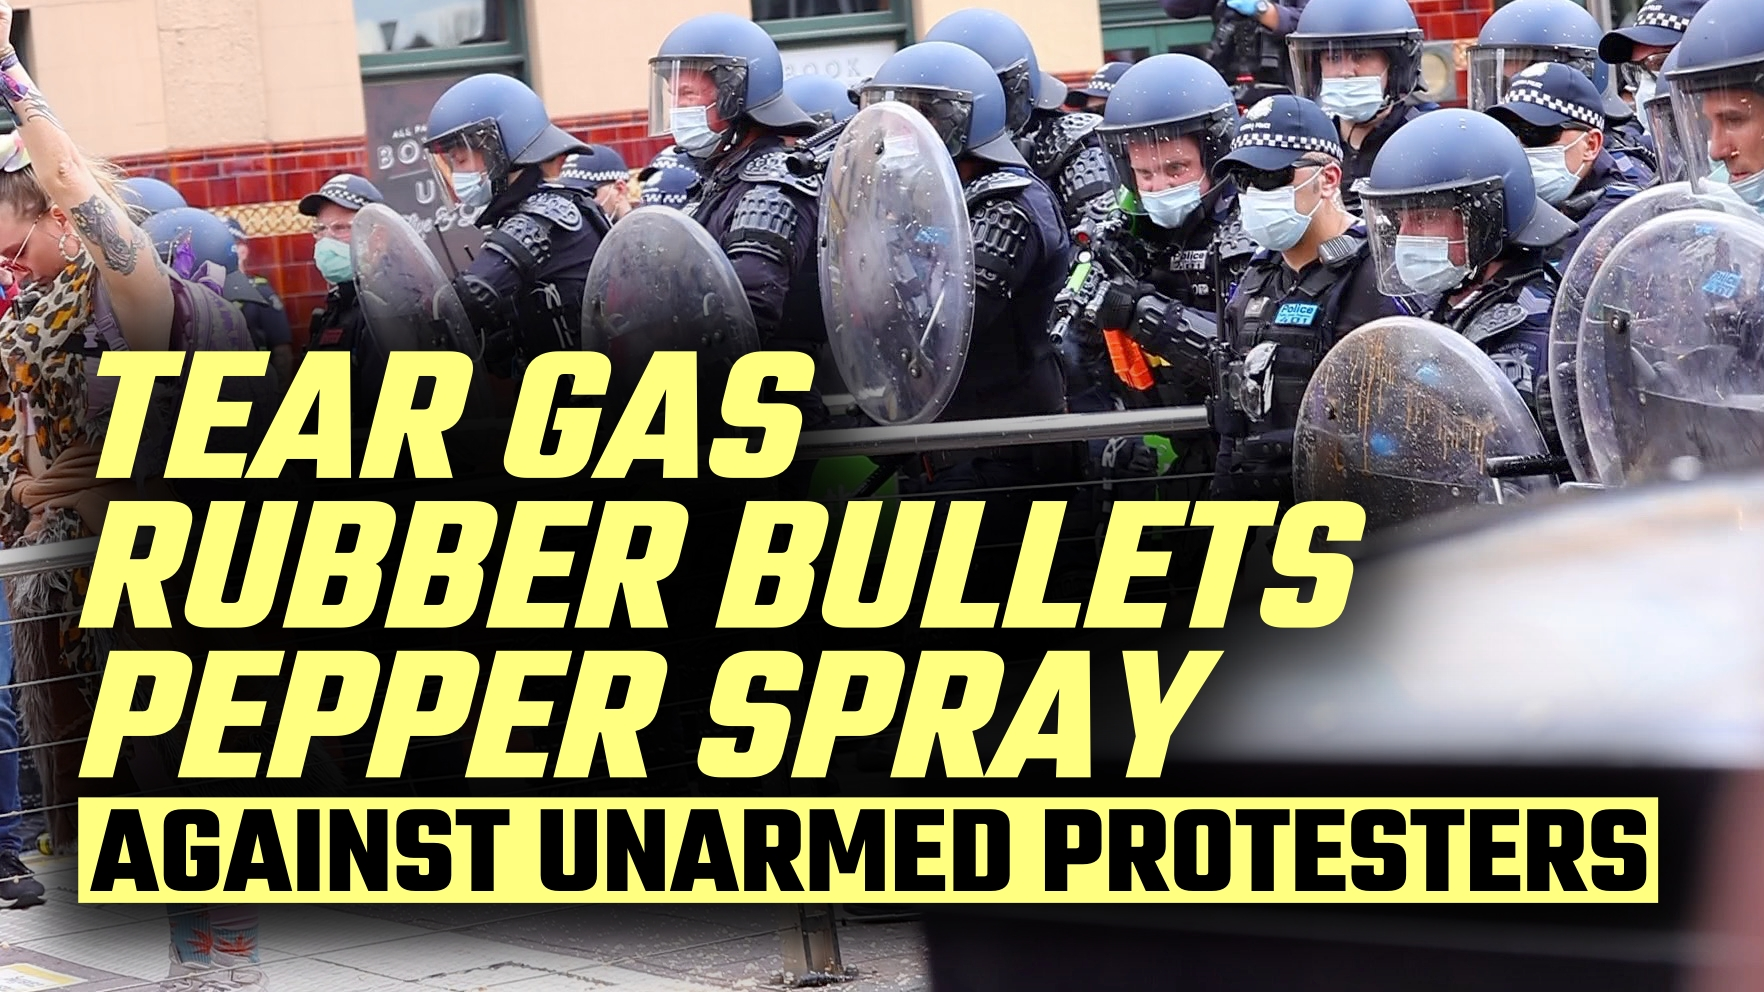 FREE AUSTRALIA: The world needs to witness what police did in Melbourne yesterday